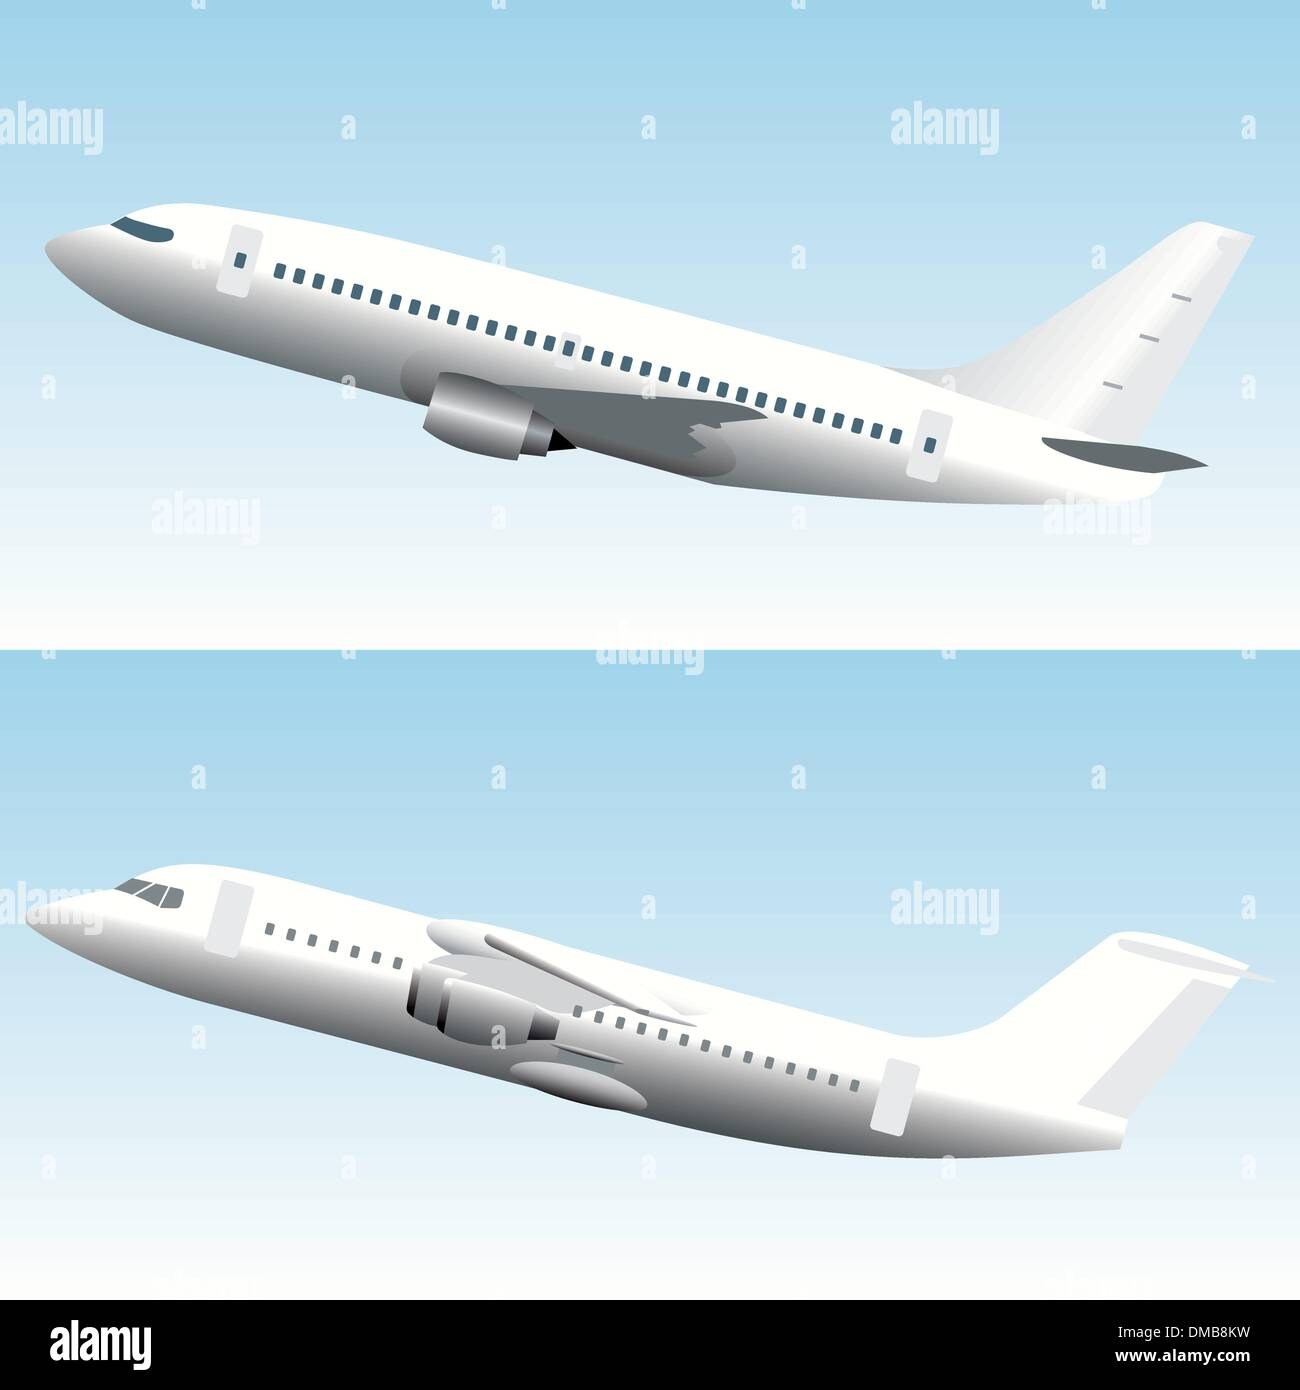 Set of 2 commercial jet airplanes - Stock Image